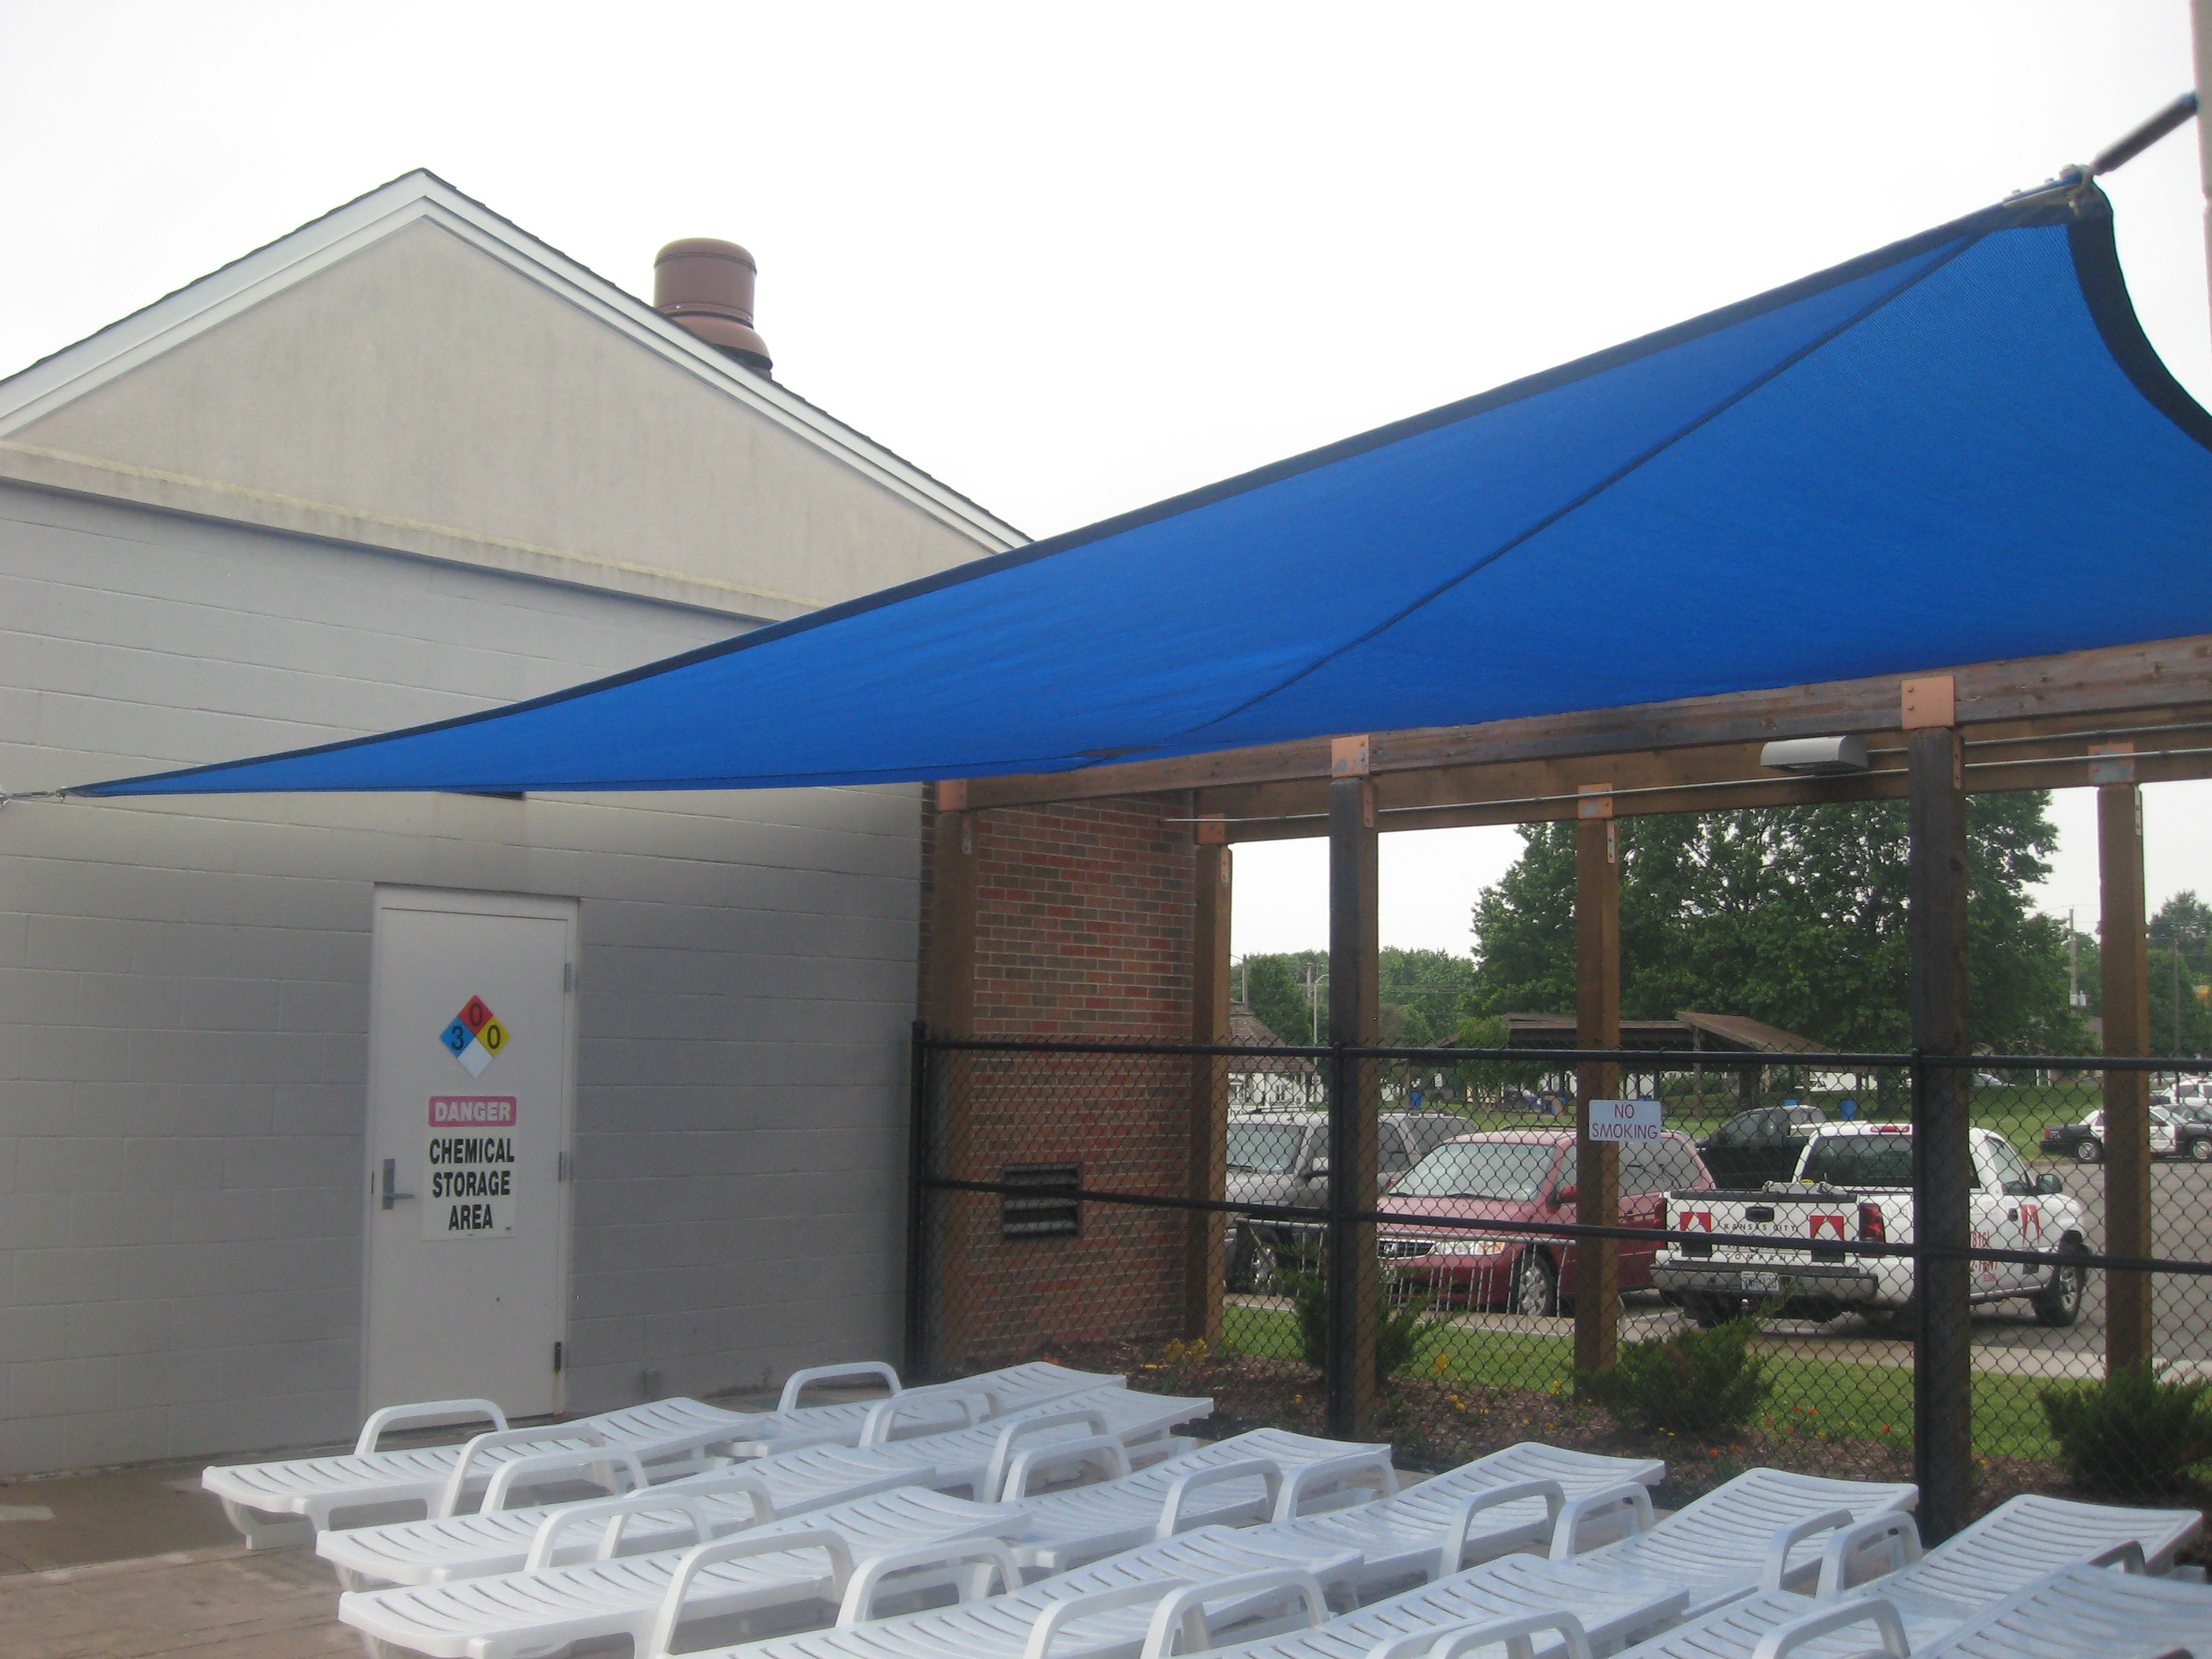 Kansas City Tent U0026 Awning Co 1819 Holmes St, Kansas City, MO 64108   YP.com